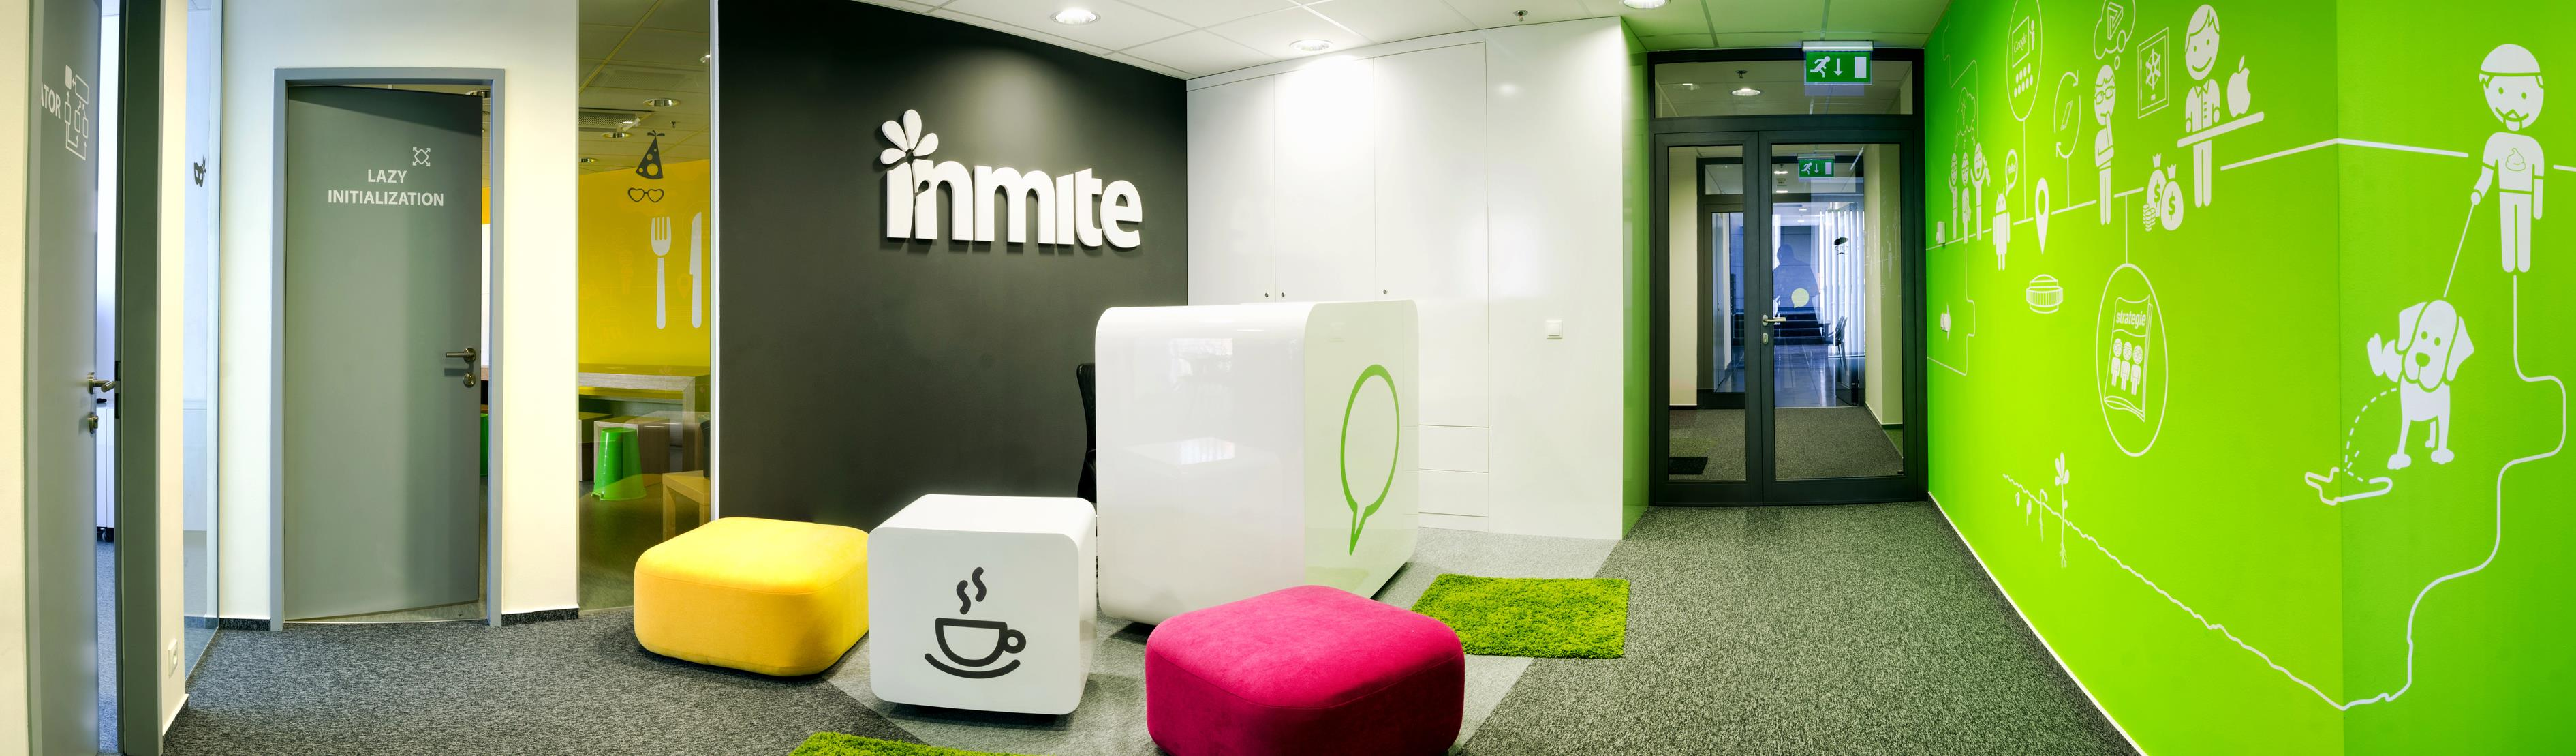 inmite_3